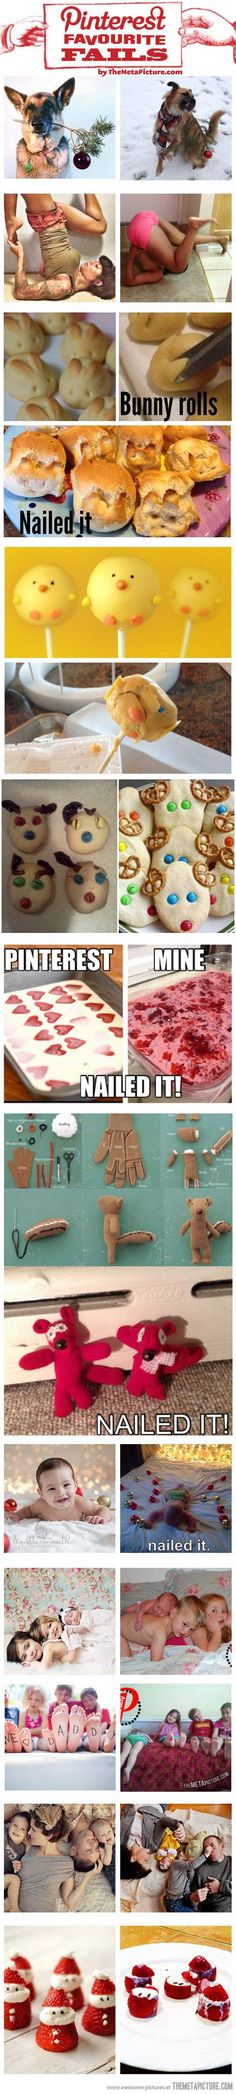 "I don't know why but this struck me as absolutely hilarious. I was laughing tears. What a good reminder of how easy it is to fall short of ""Pinterest Perfection"". At least we try!...lh"